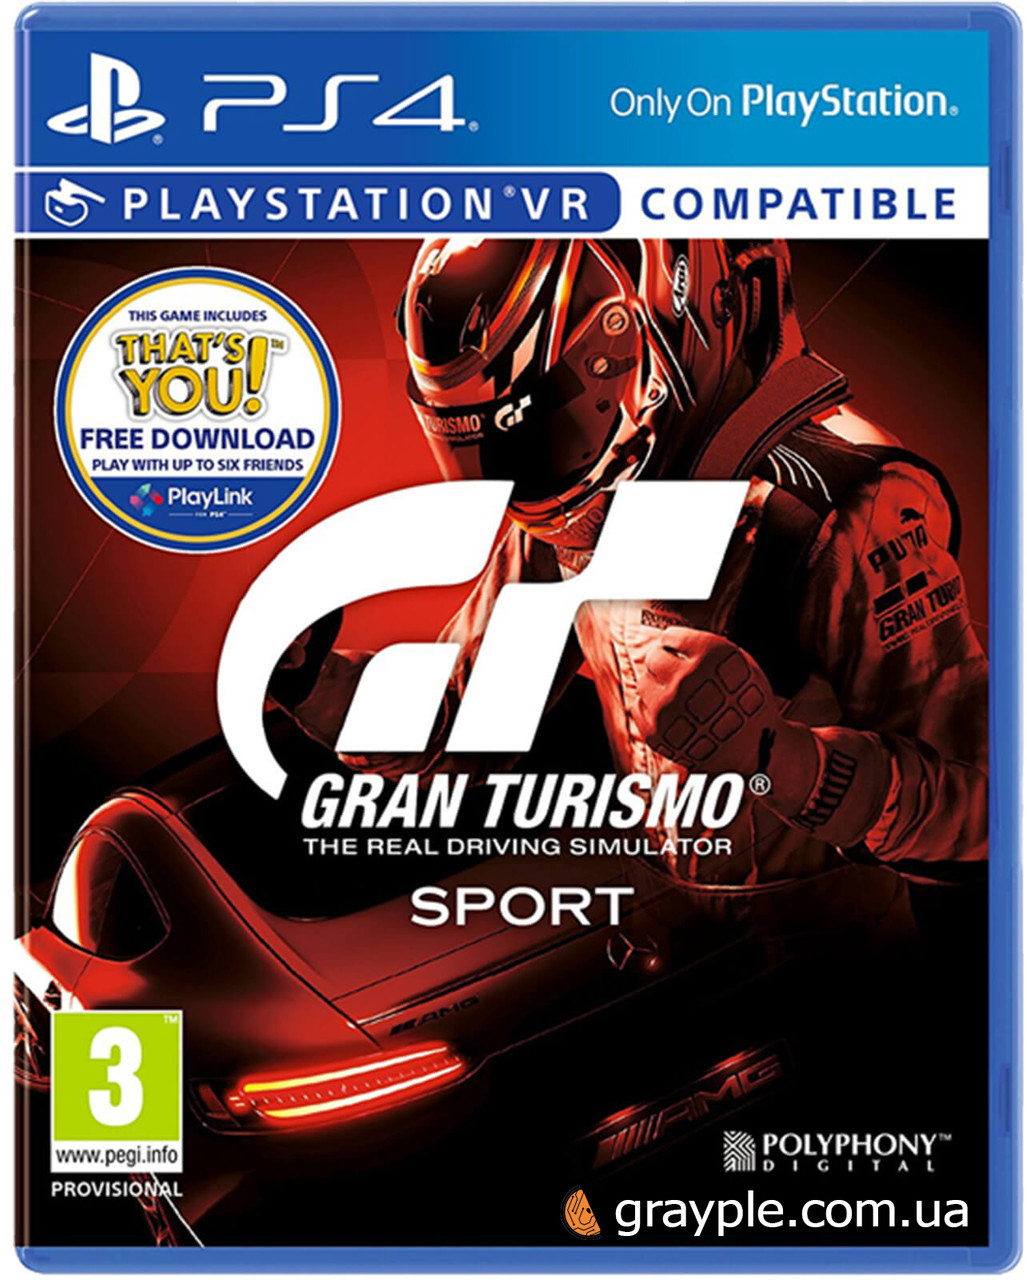 Диск PS4 Gran Turismo (PS4, Russian version)